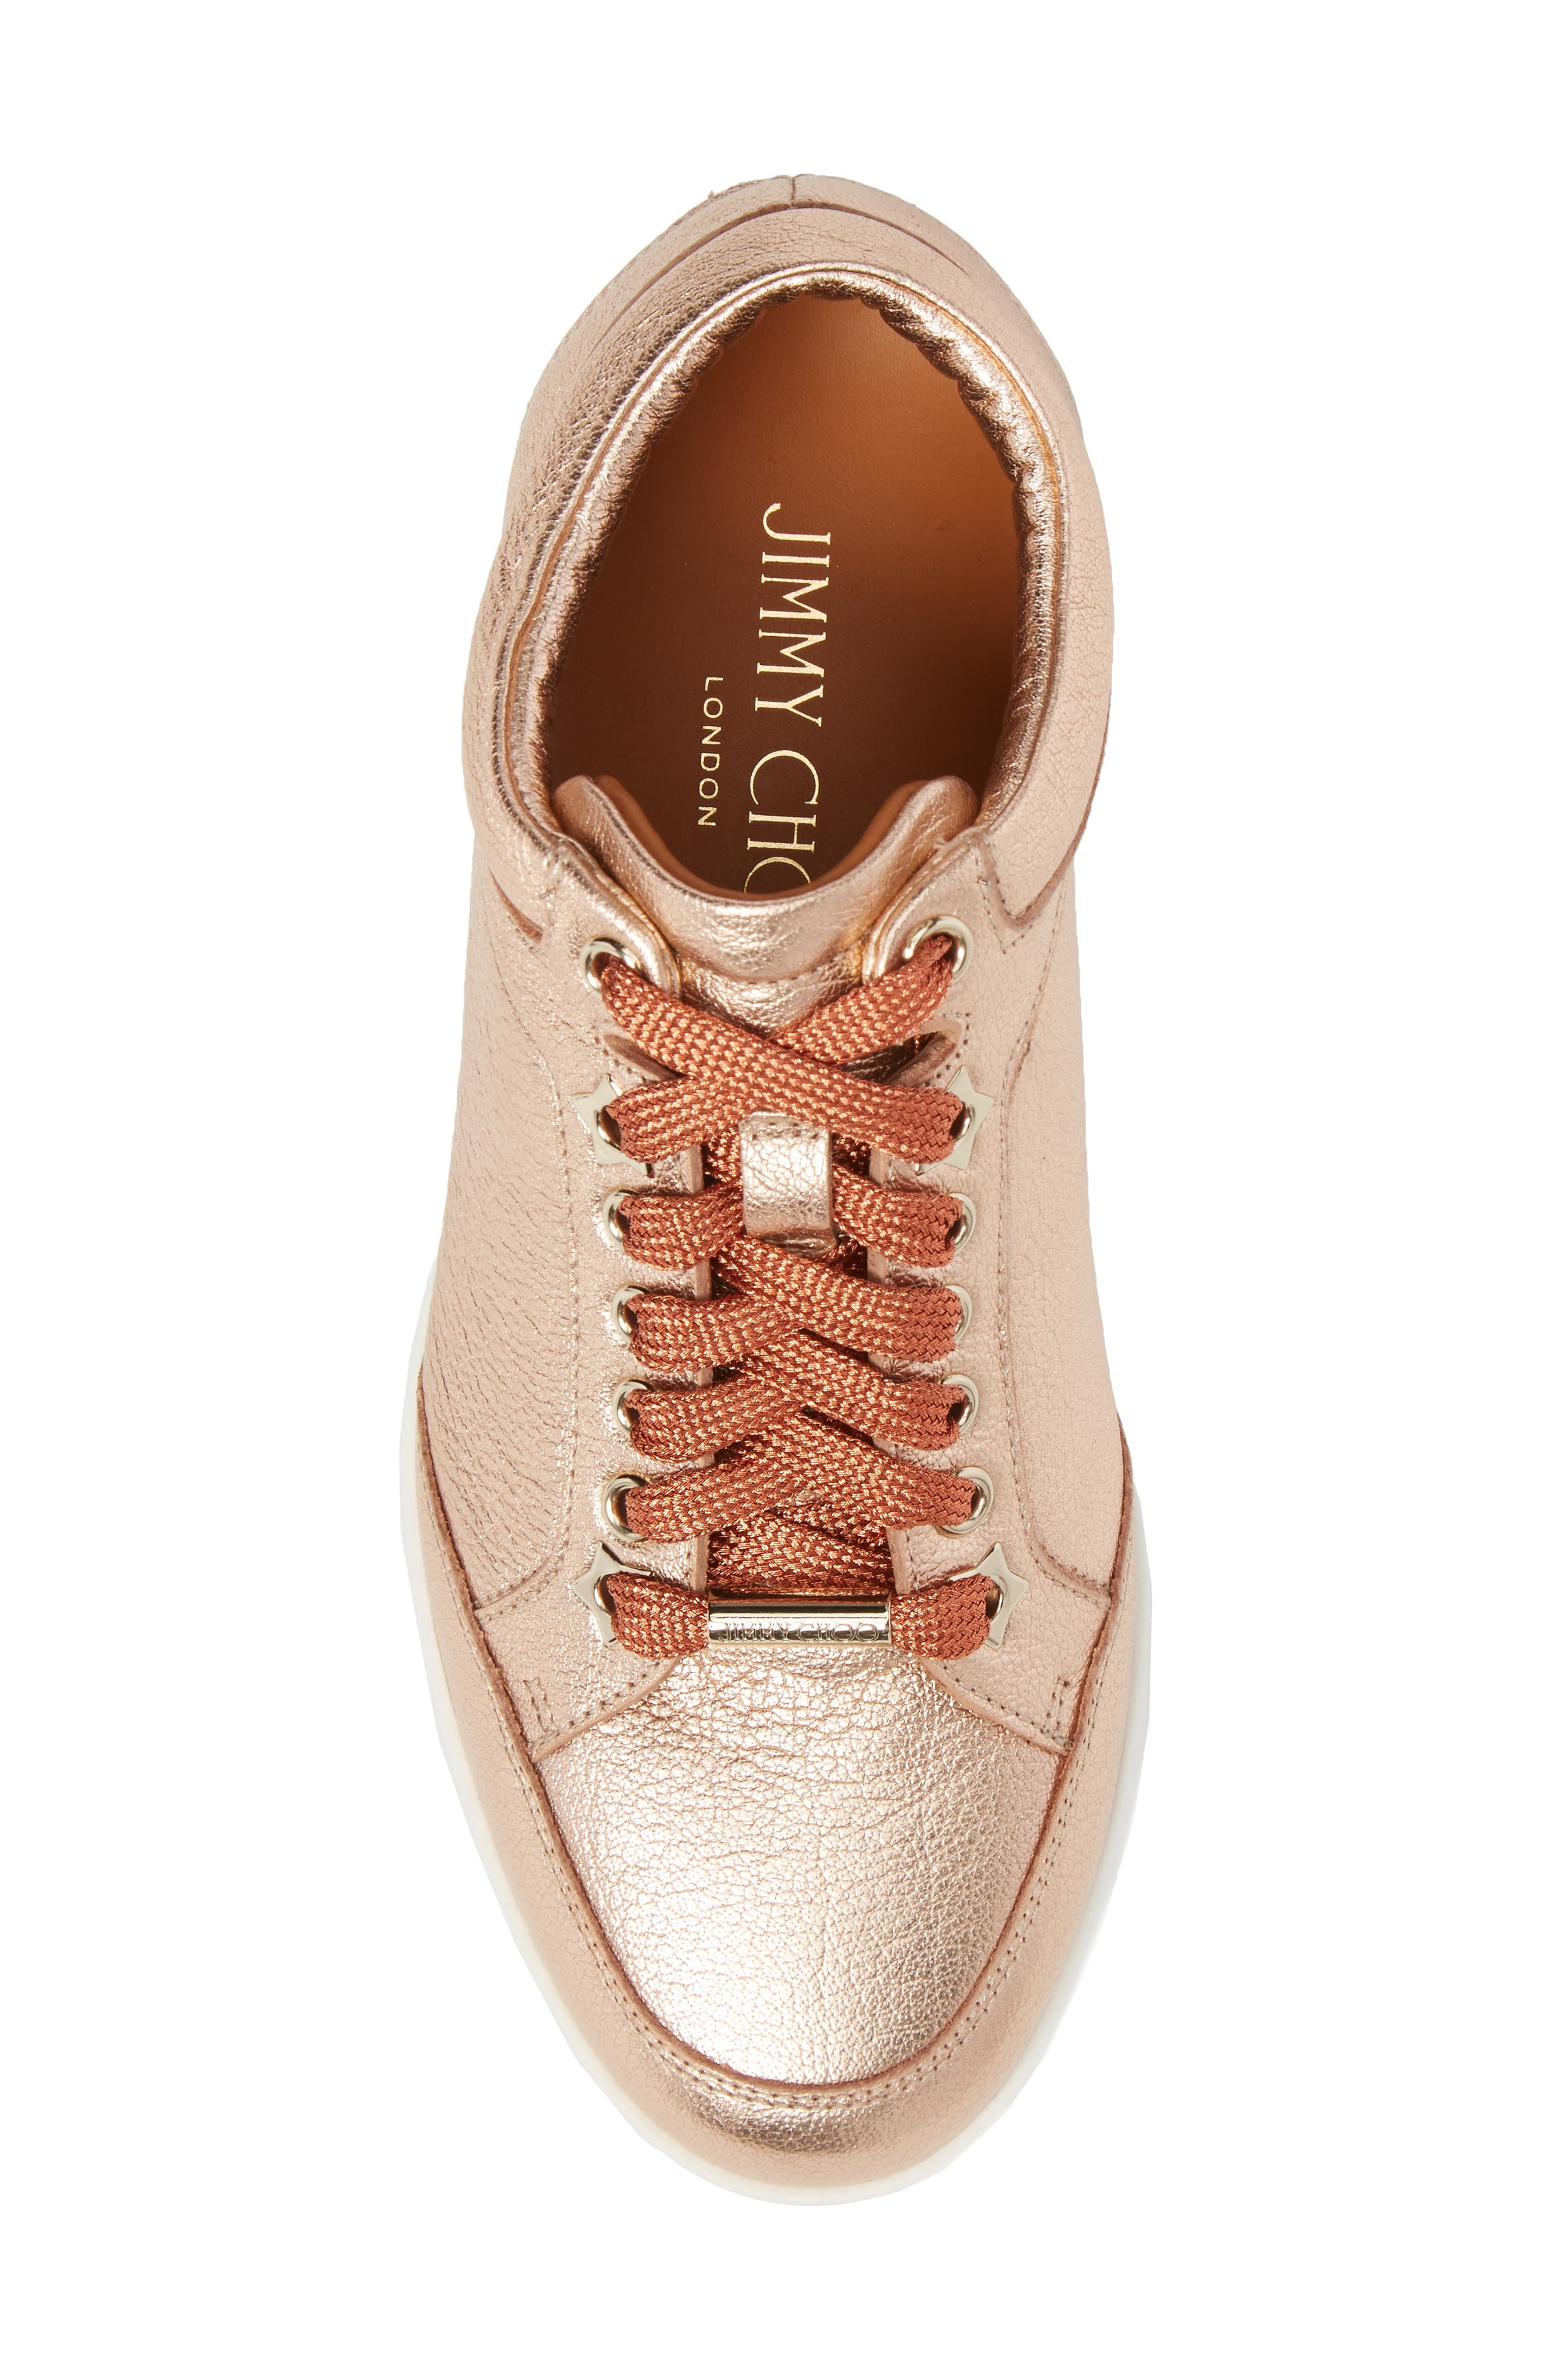 Miami Metallic Sneaker,                             Alternate thumbnail 5, color,                             680